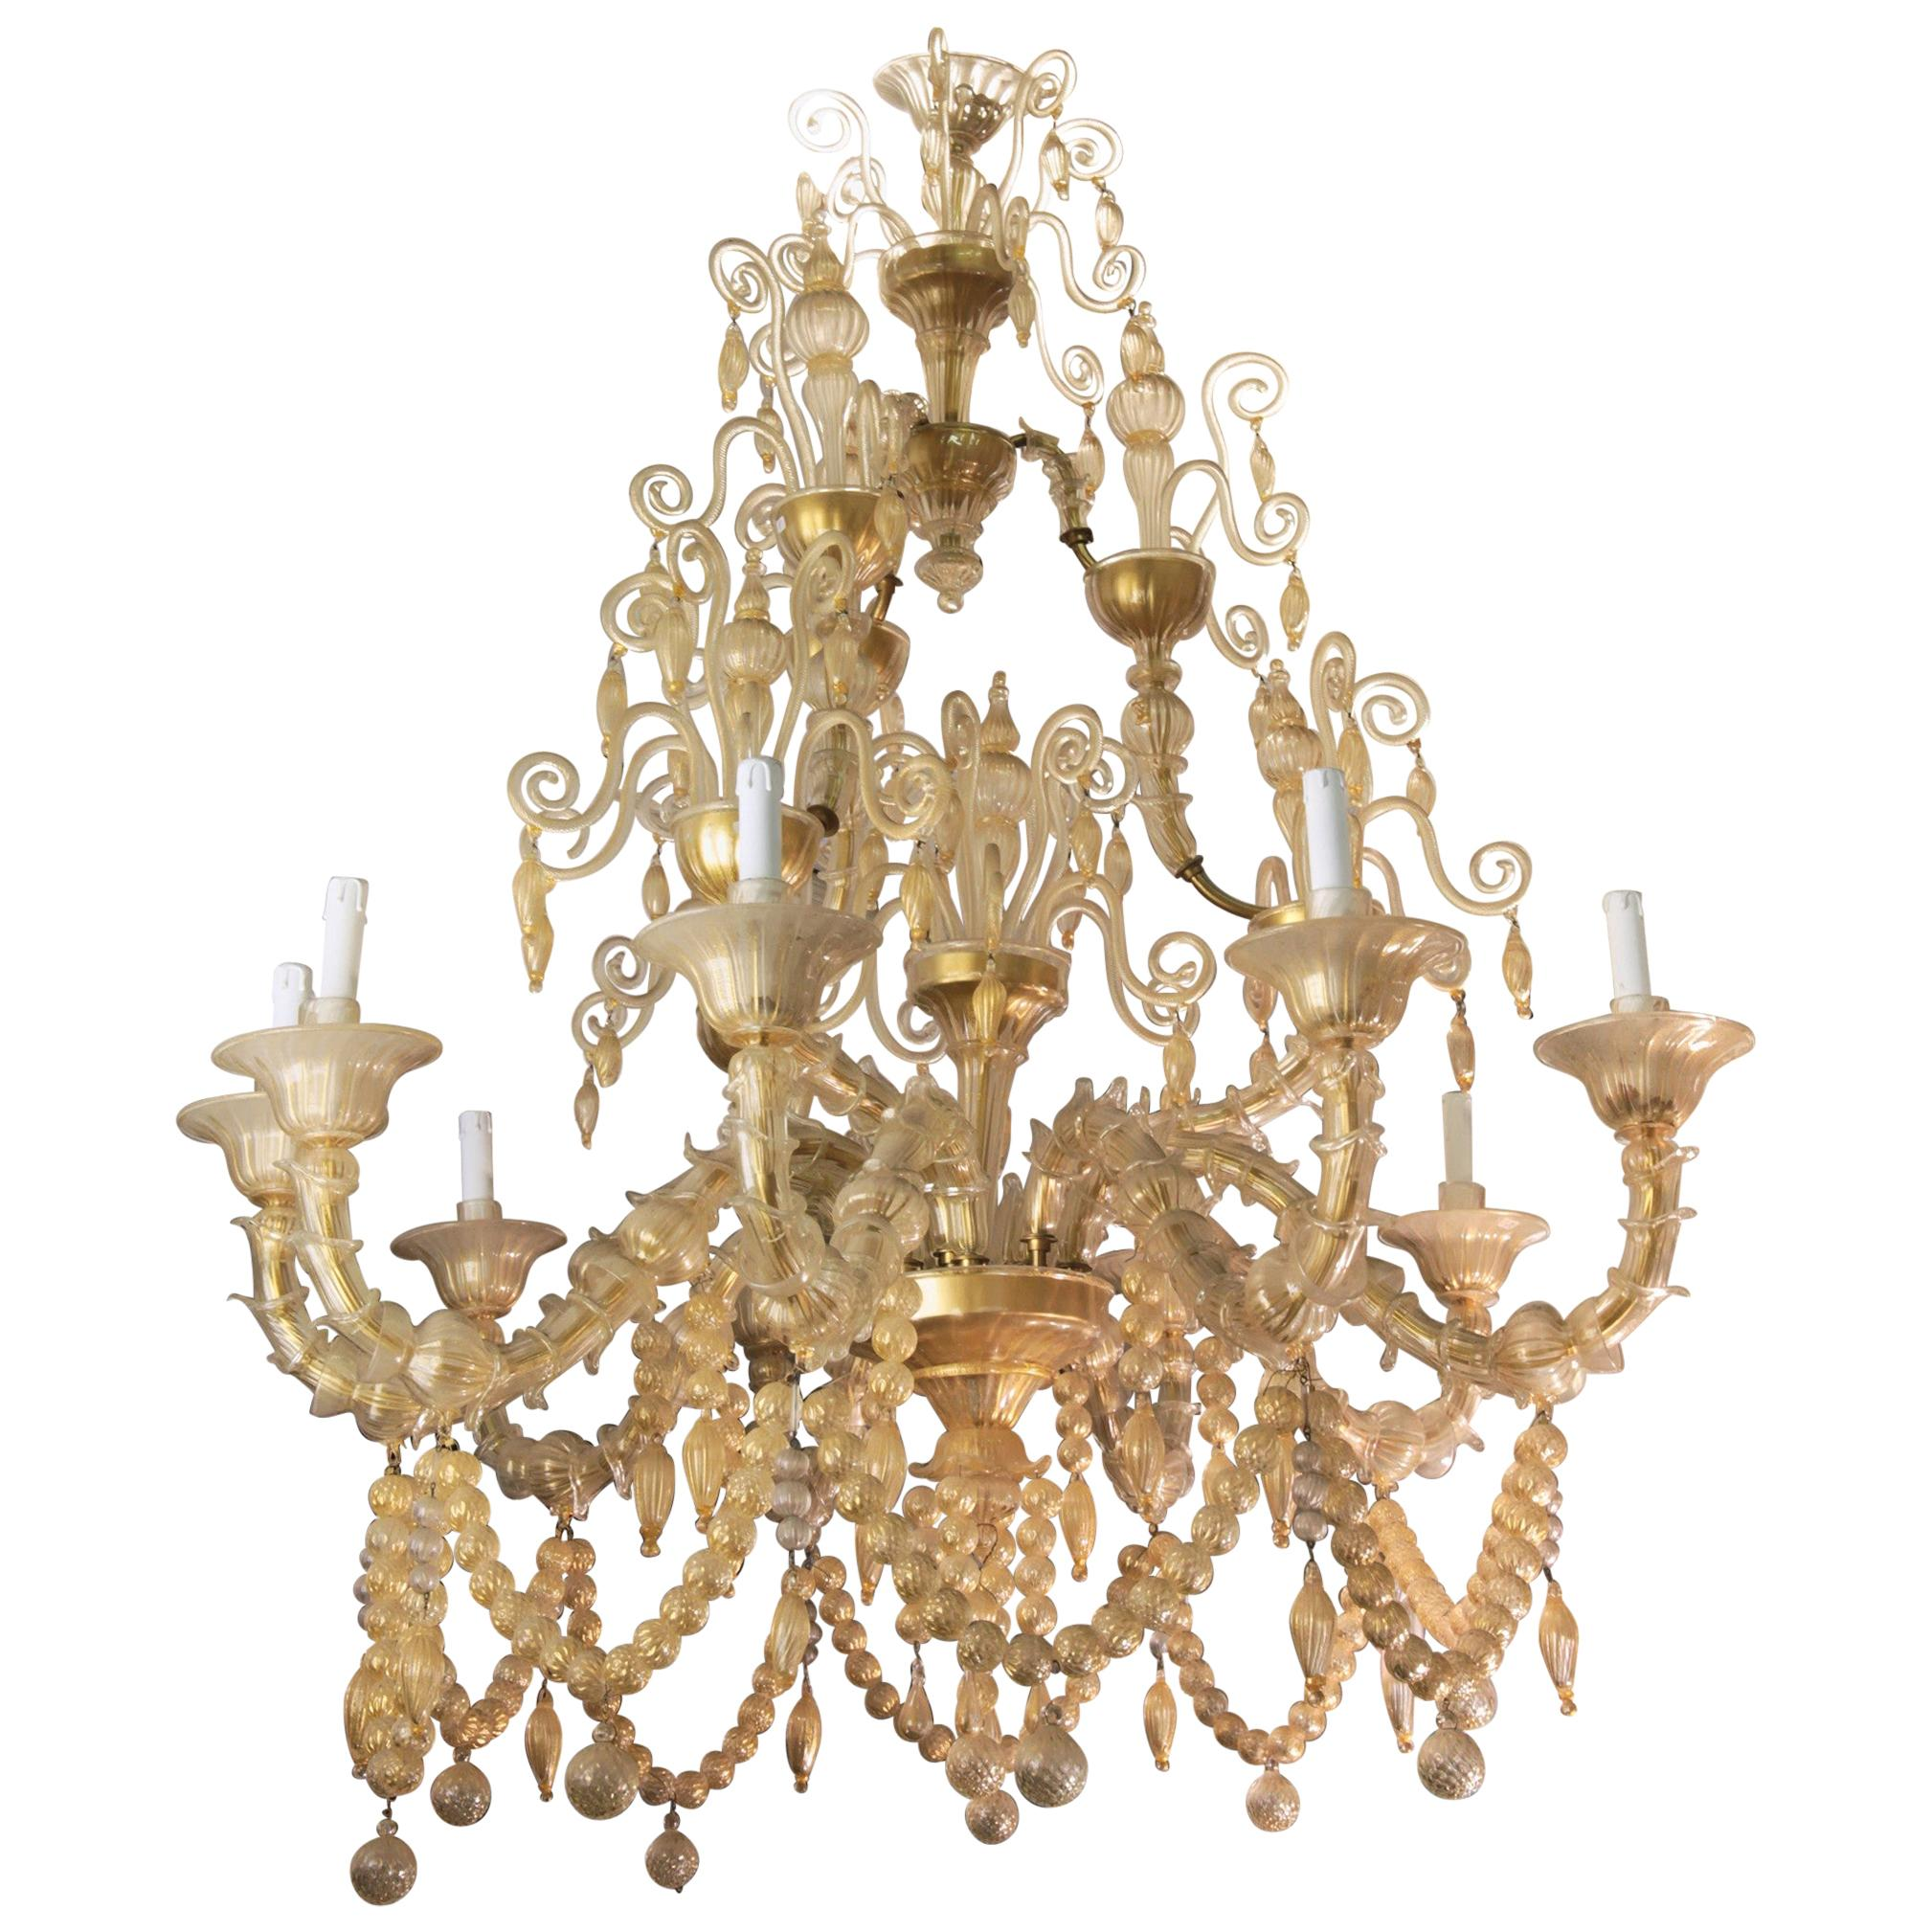 Cesare Toso Pearl Rezzonico Chandelier 9 Arms All in Gold Leaf over Clear, 1980s